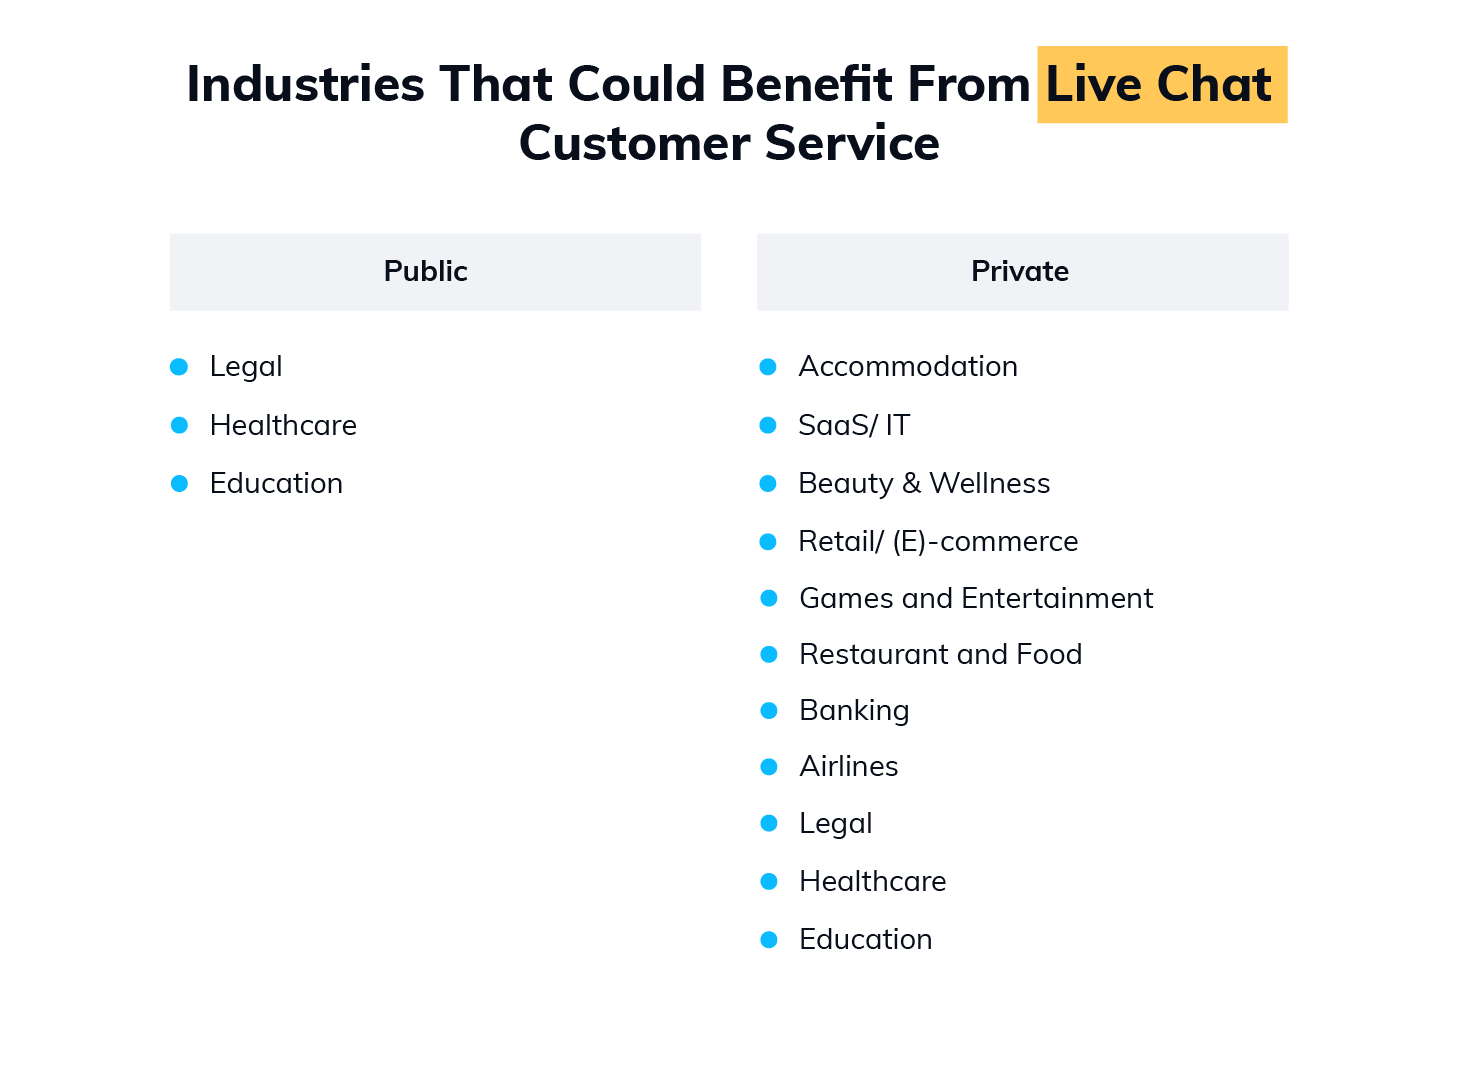 What Industries Would Benefit from Live Chat Customer Service the Most Infographic